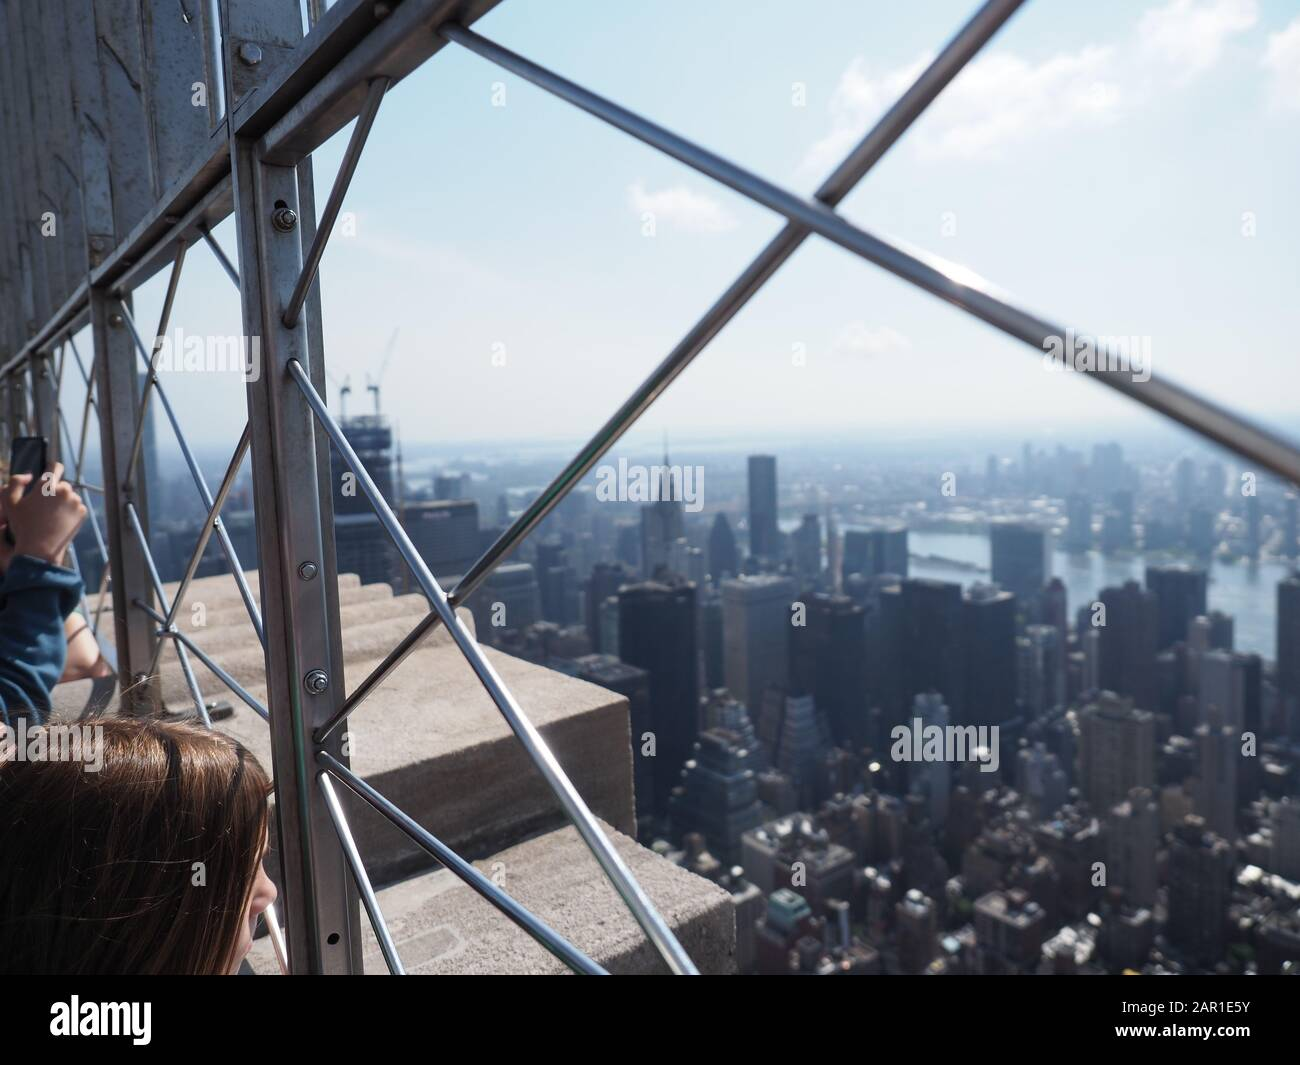 22 Pan Am Building High Resolution Stock Photography and Images   Alamy